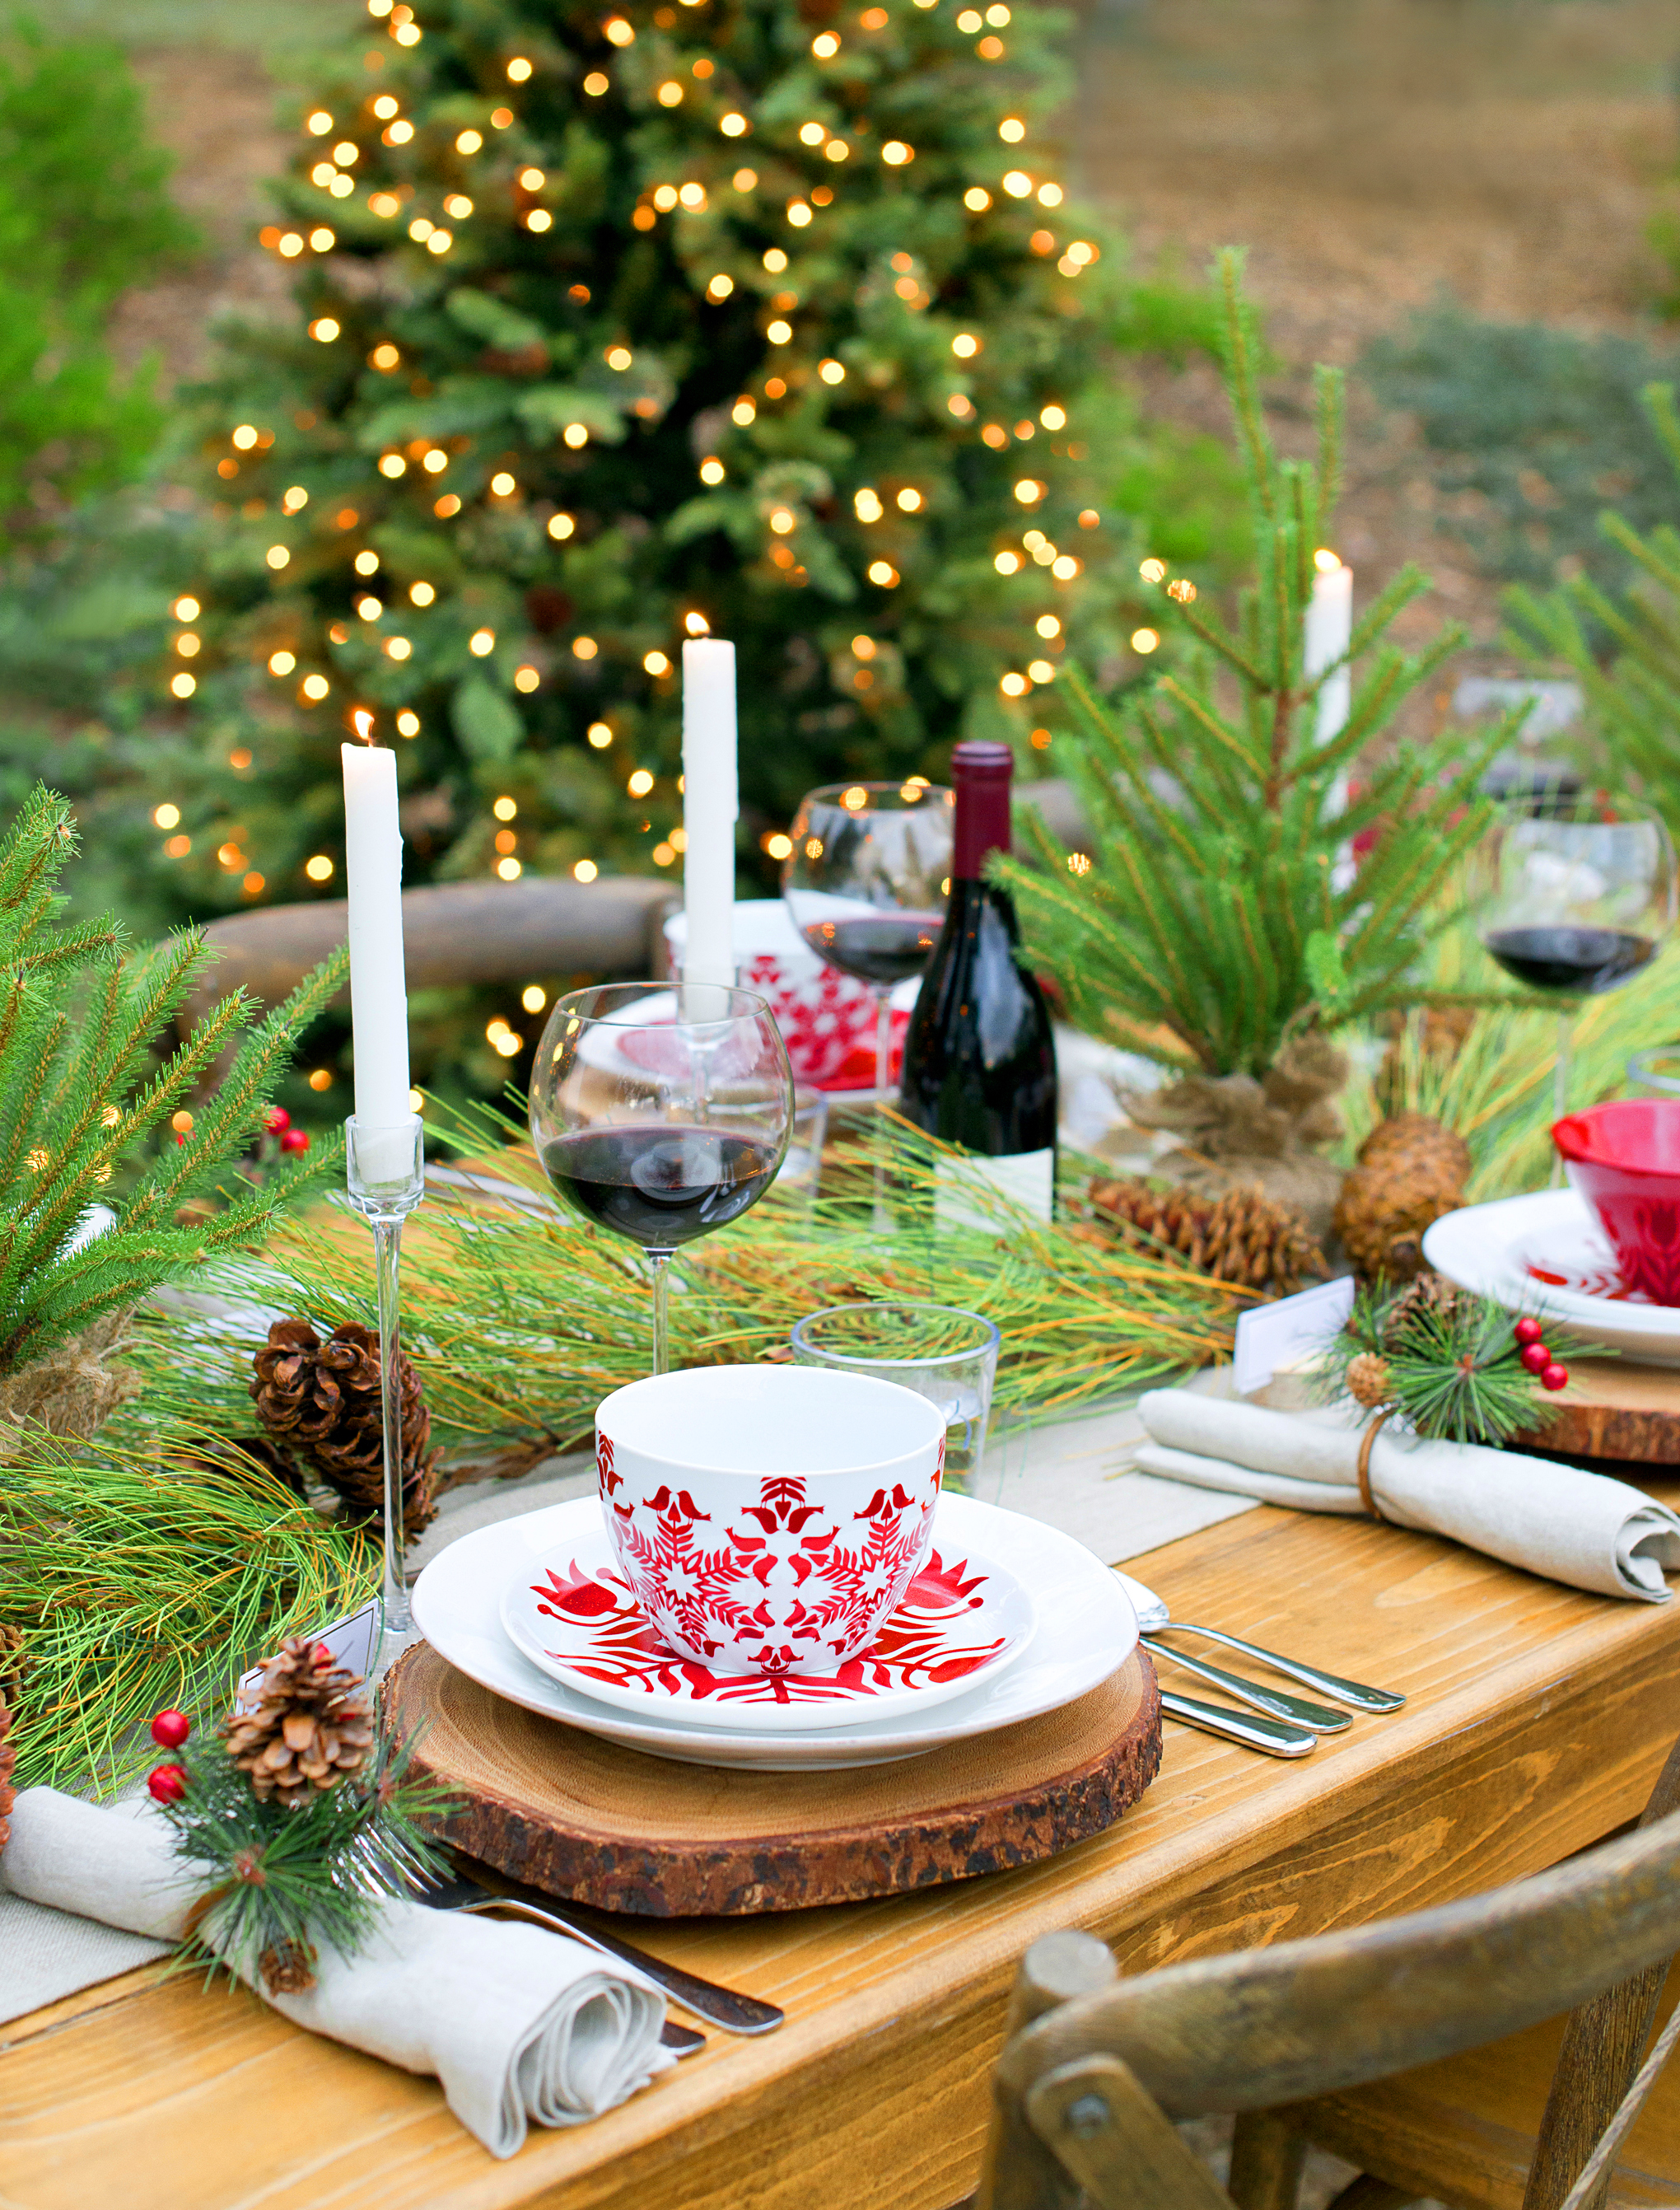 Crate & Barrel Christmas Tablescape with My Splendid Living - Christmas Amongst the Fir Cocktail party Blog post